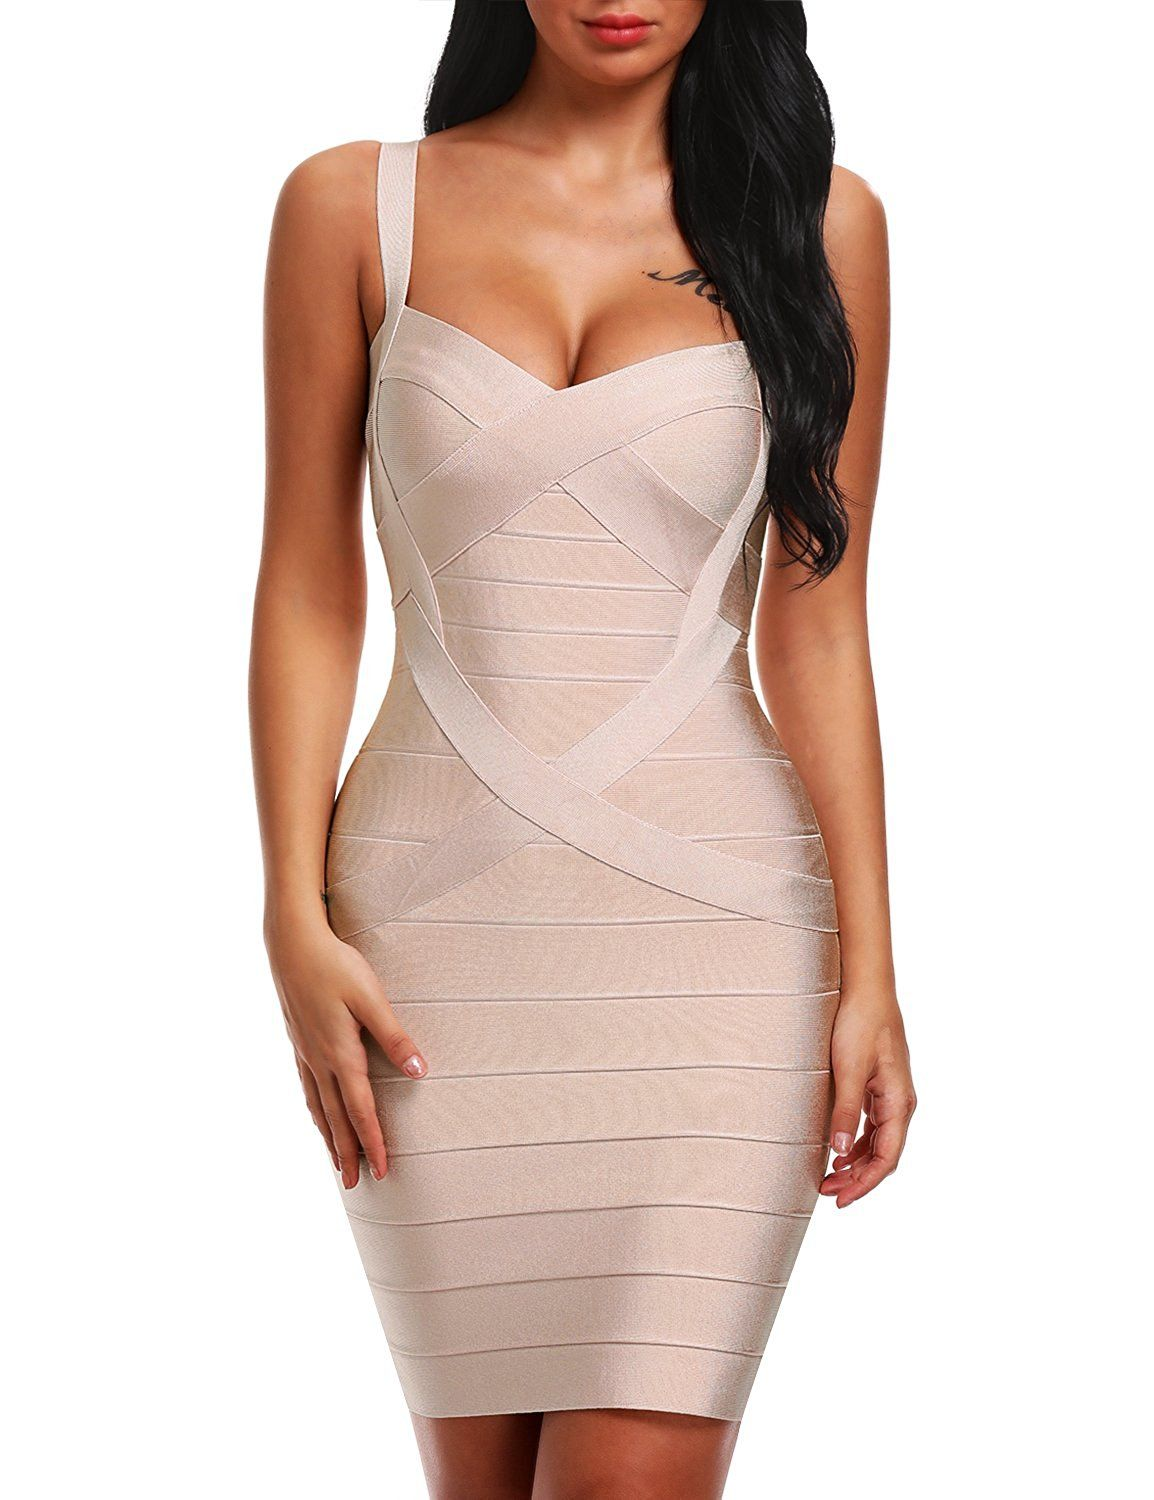 Bqueen womenus spaghetti strap bodycon bandage dress bq